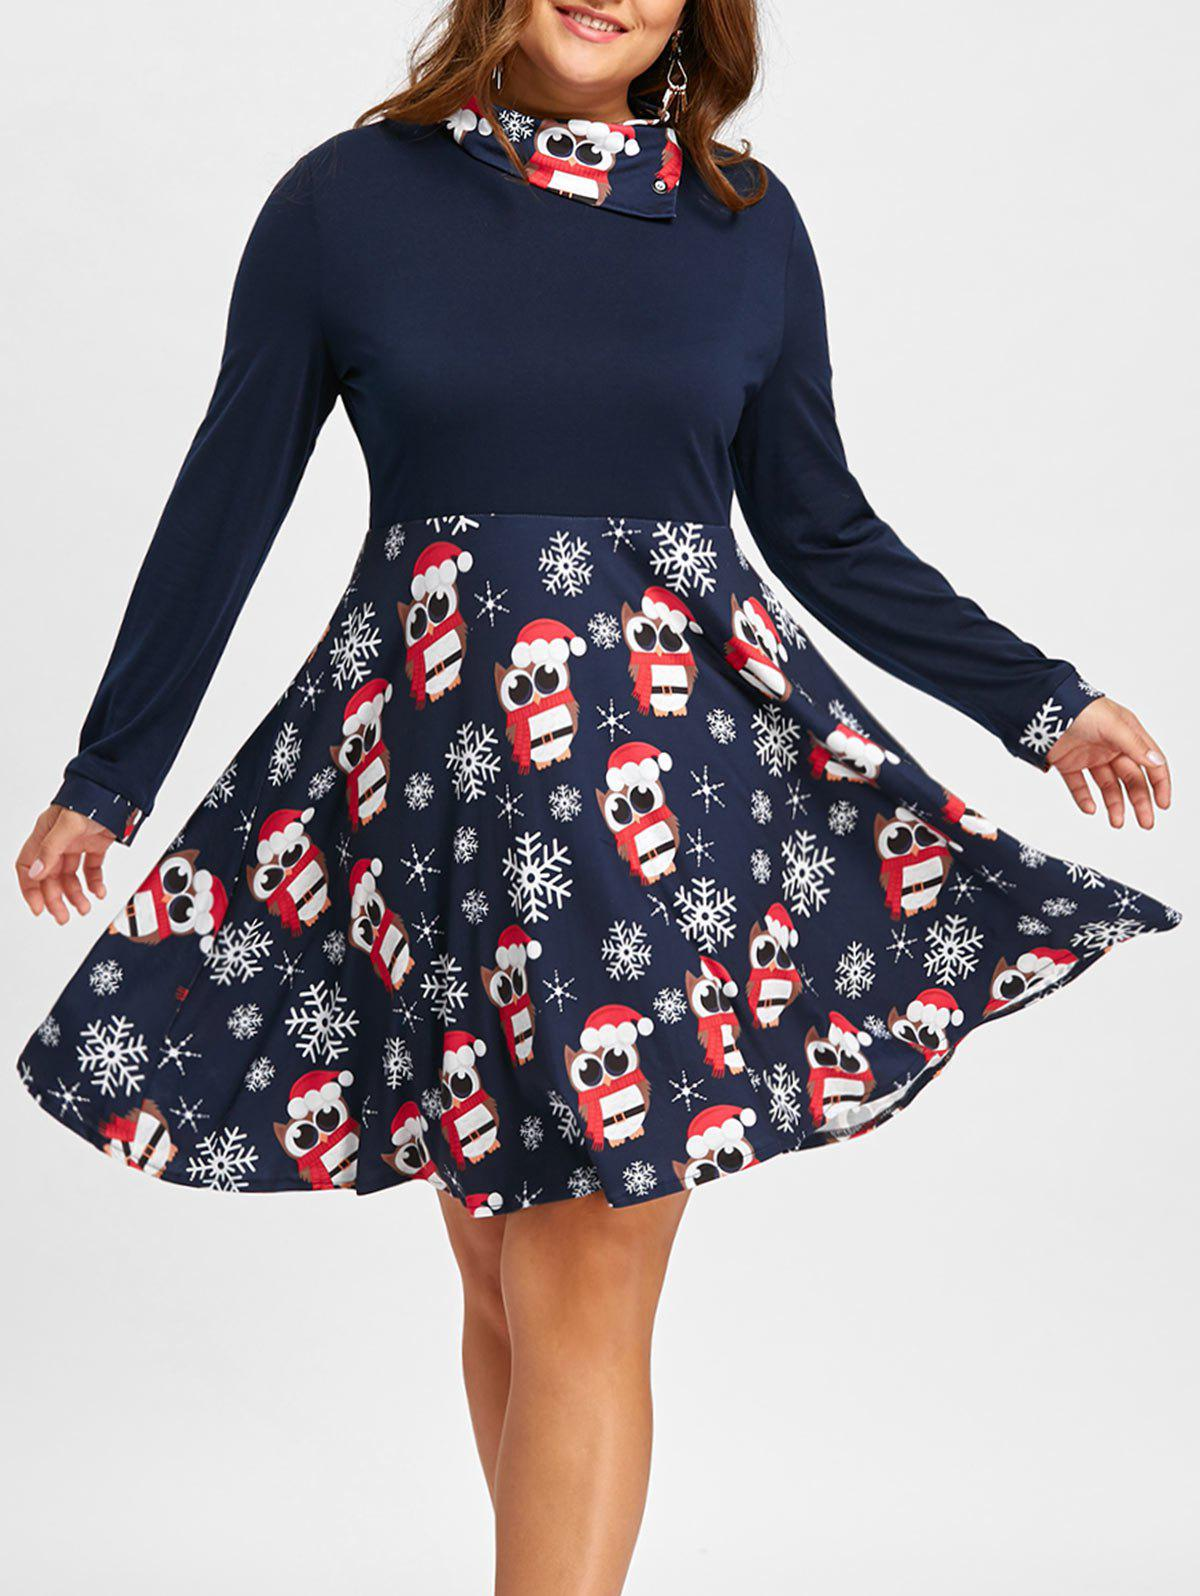 New Christmas Owl Snowflake Plus Size Long Sleeve Dress